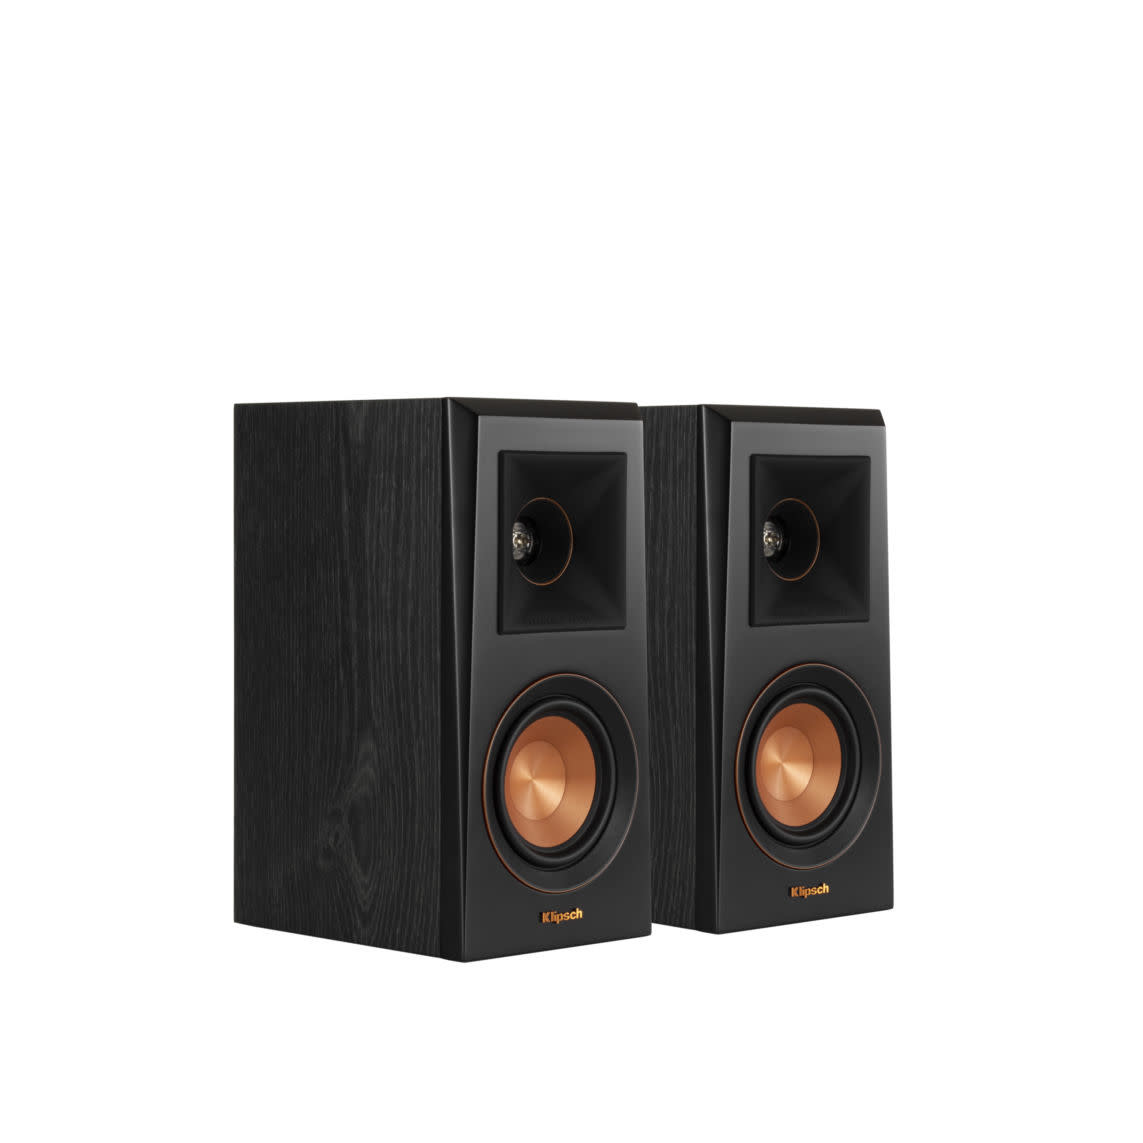 Klipsch Klipsch RP-400M Bookshelf Speakers (Pair)